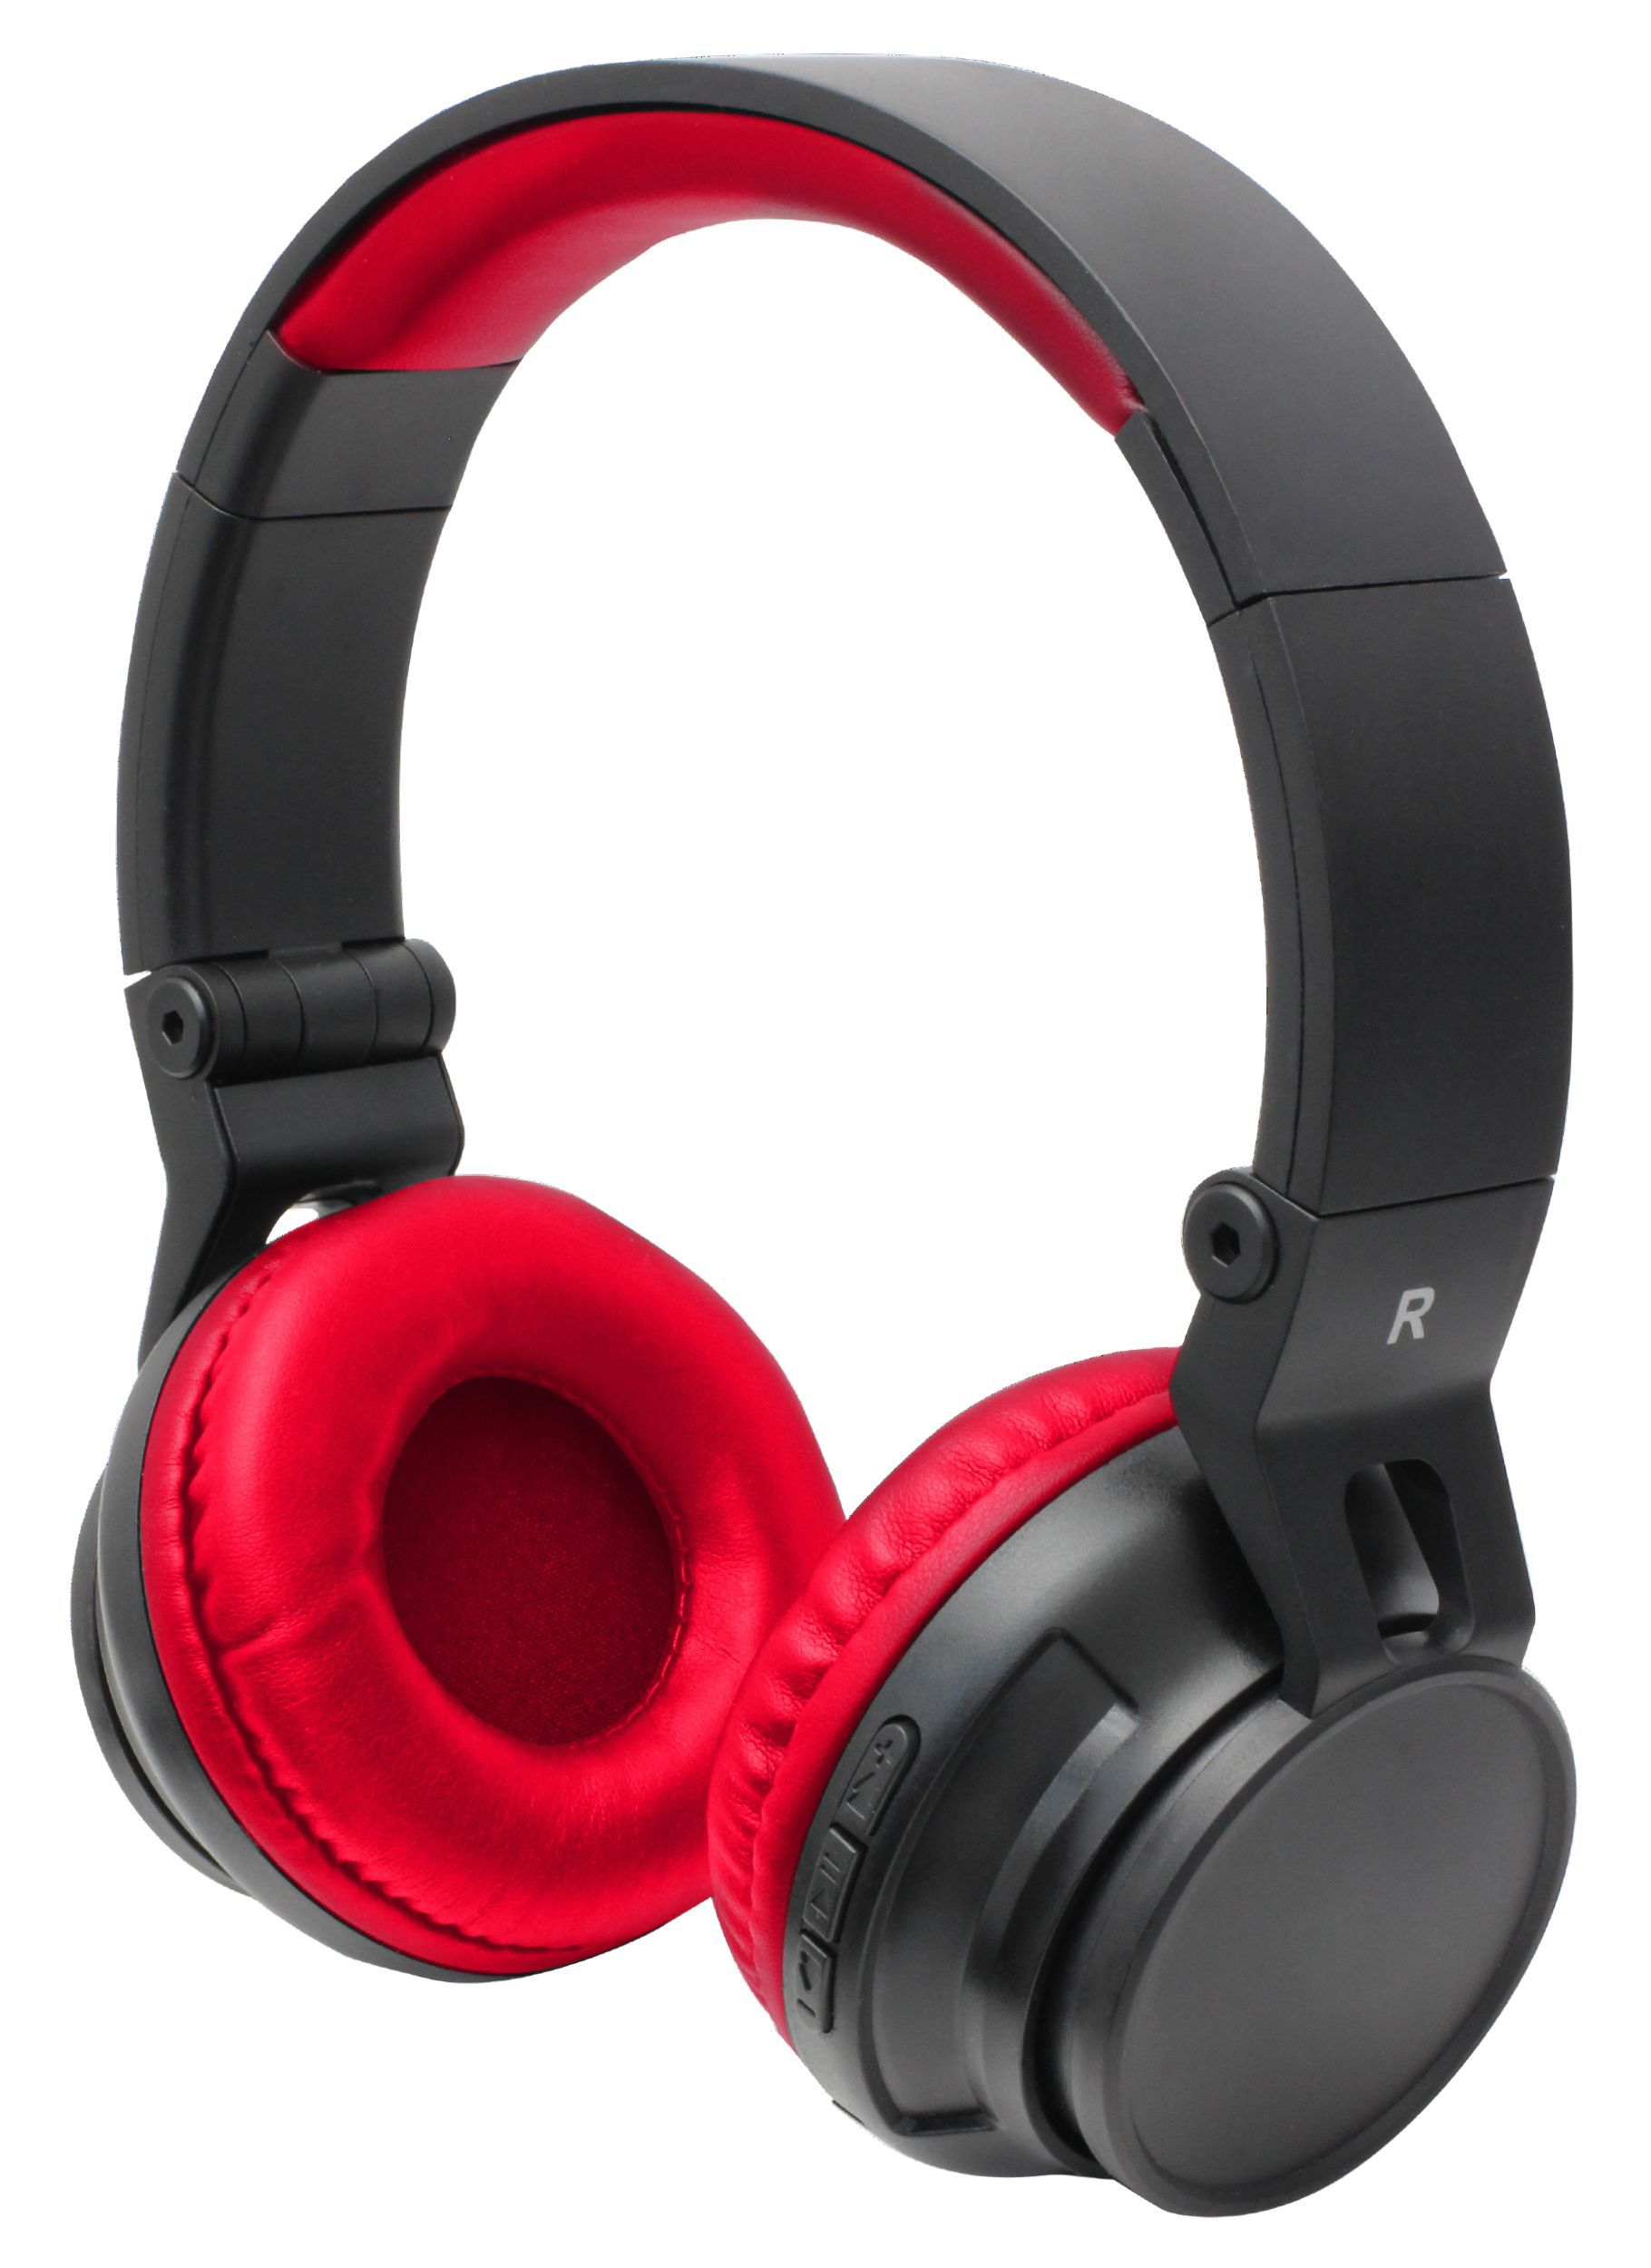 62d4a51be16 iWorld Dynamic Bluetooth Headphones Red - Electronics, Personal Electronics  at Academy Sports Red (HDY-1040) - Electronics, Personal Electronics at.